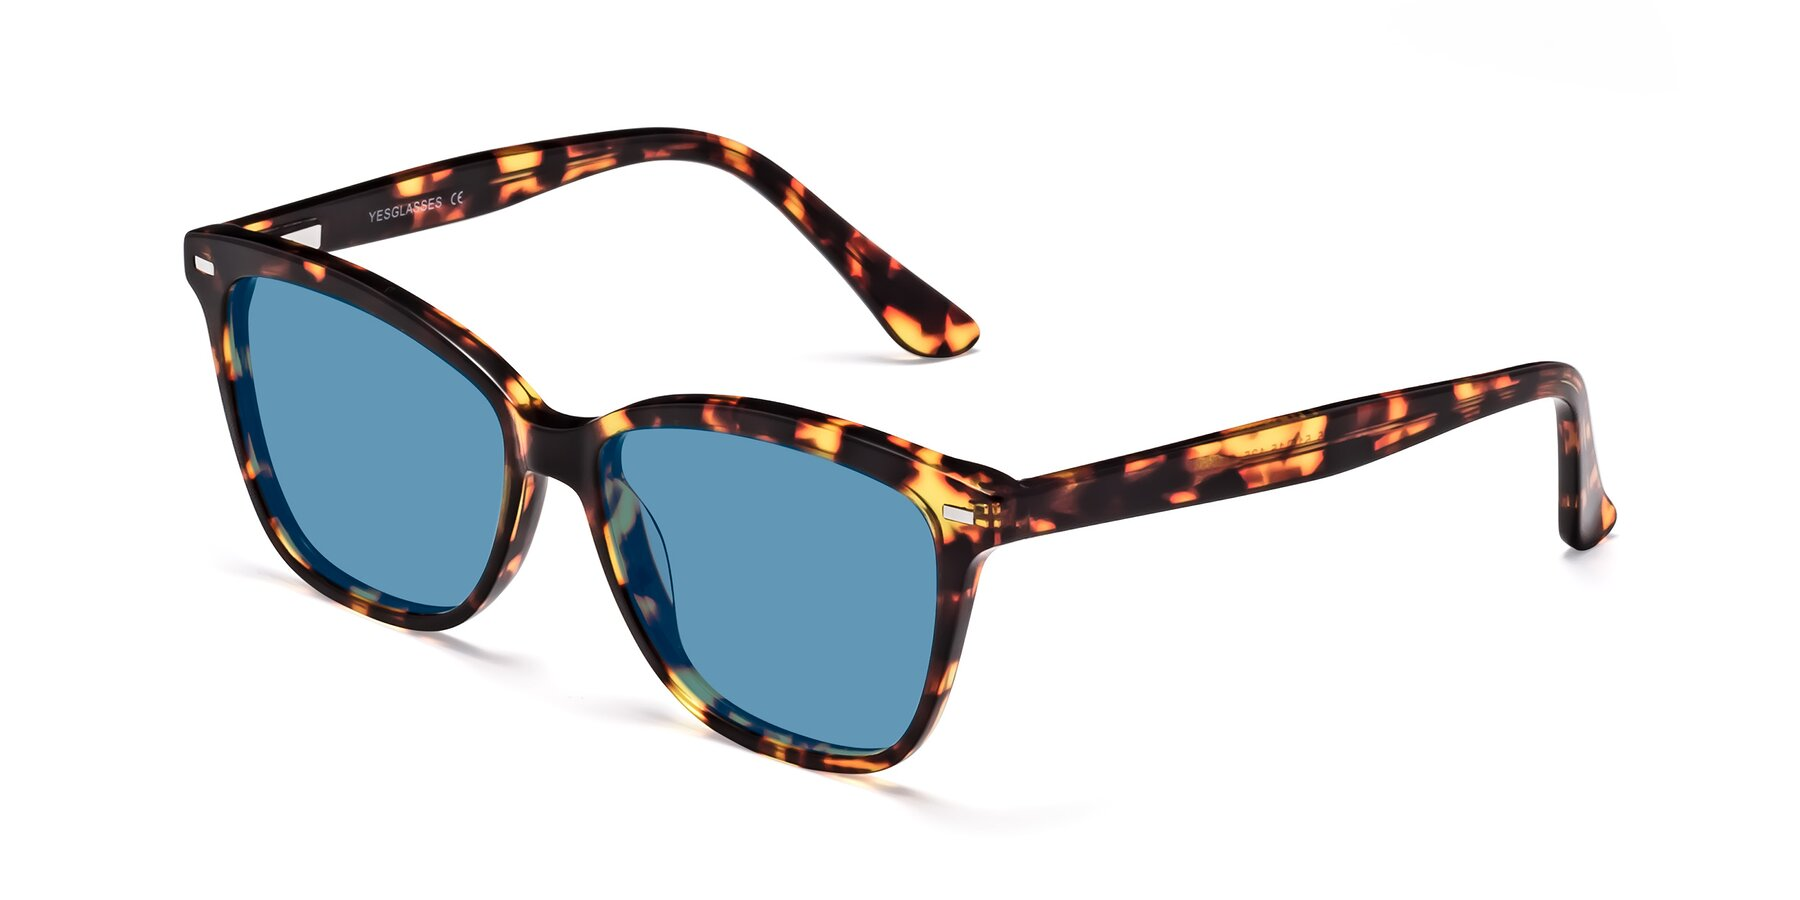 Angle of 17485 in Tortoise with Medium Blue Tinted Lenses